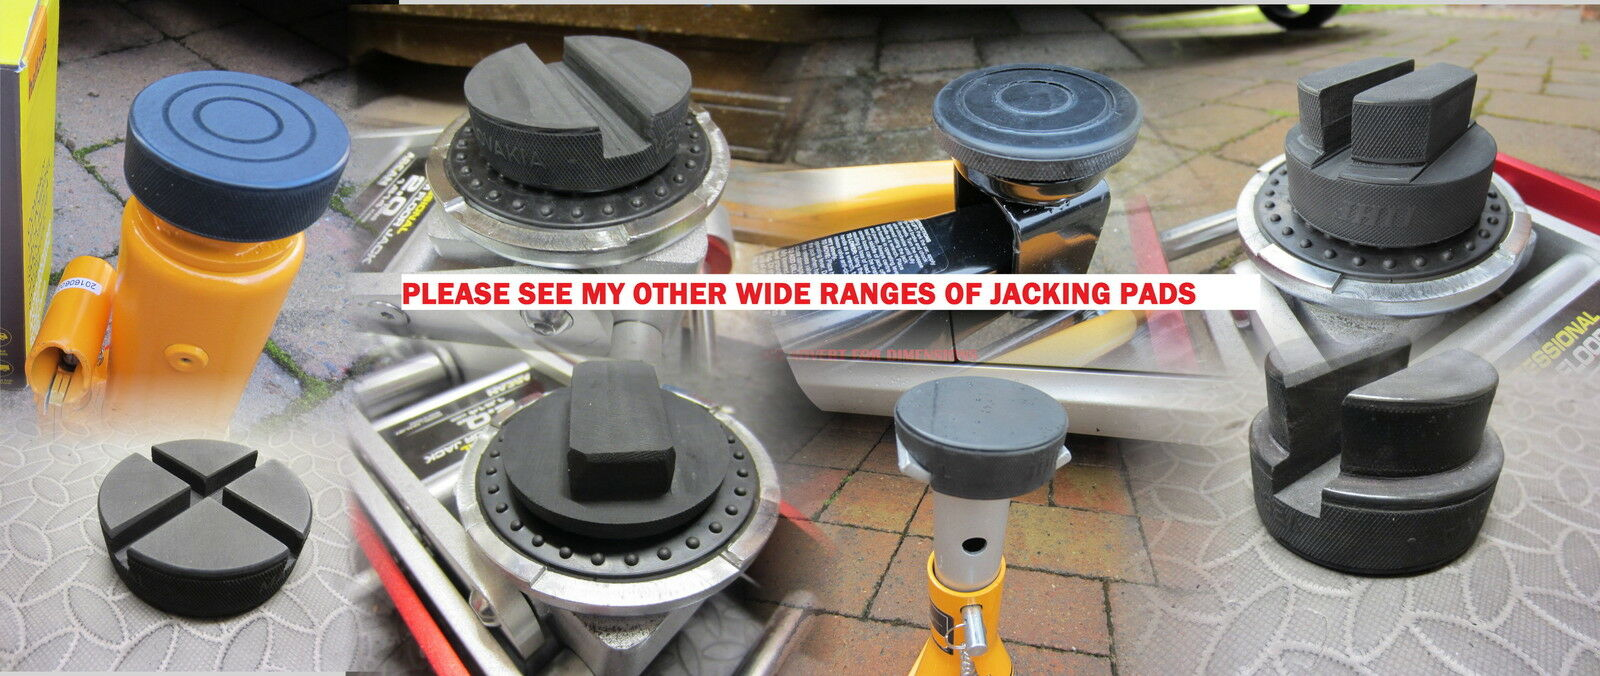 Trolley Jacking Pads - Rubber Pads